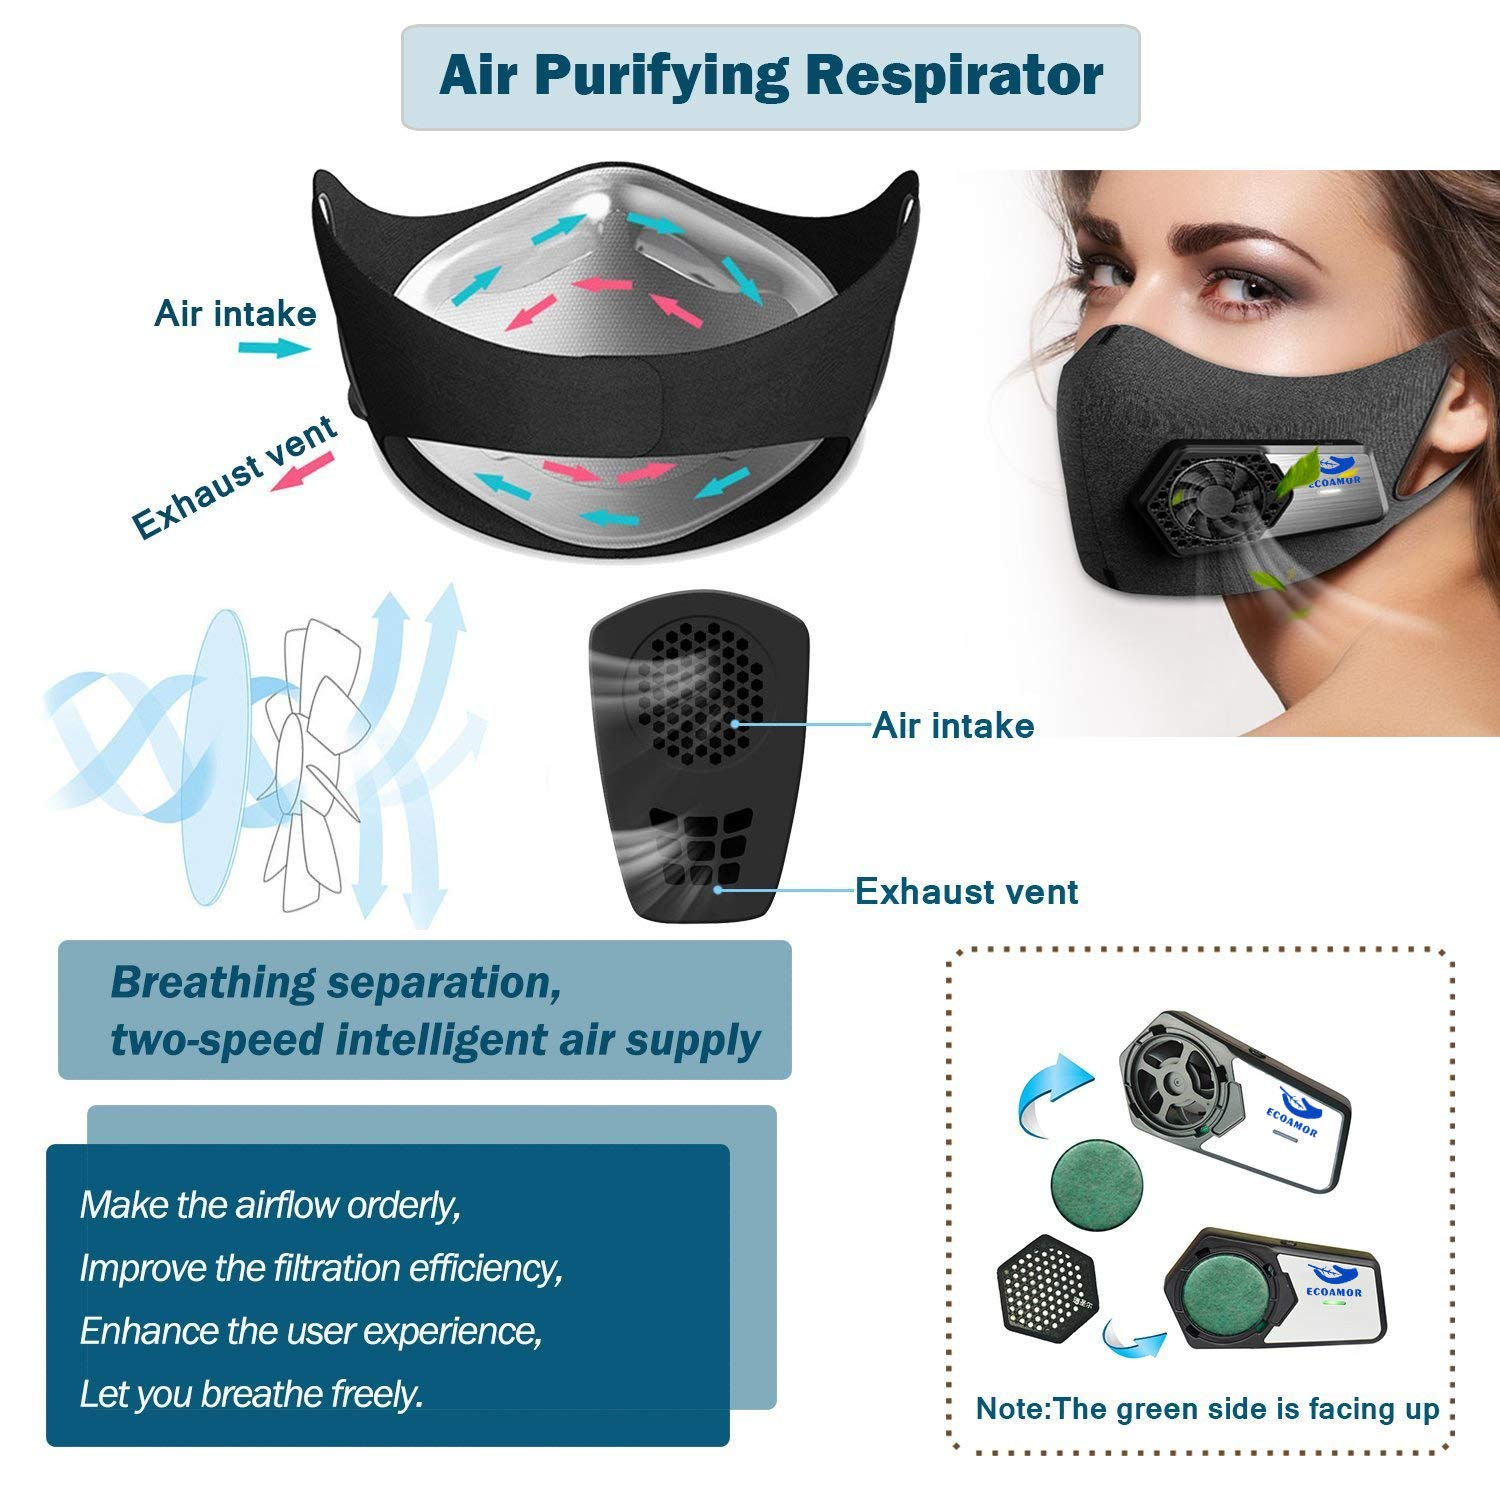 Anti Dust Electric Mask Reusable n95 Respirator for Face Air Purifying, ECOAMOR Washable Safety Masks for Outdoor Sports,Sanding,Gardening,TravelResist Dust,Germs,Allergies,PM2.5,Best Respirator Mask by ECOAMOR (Image #3)